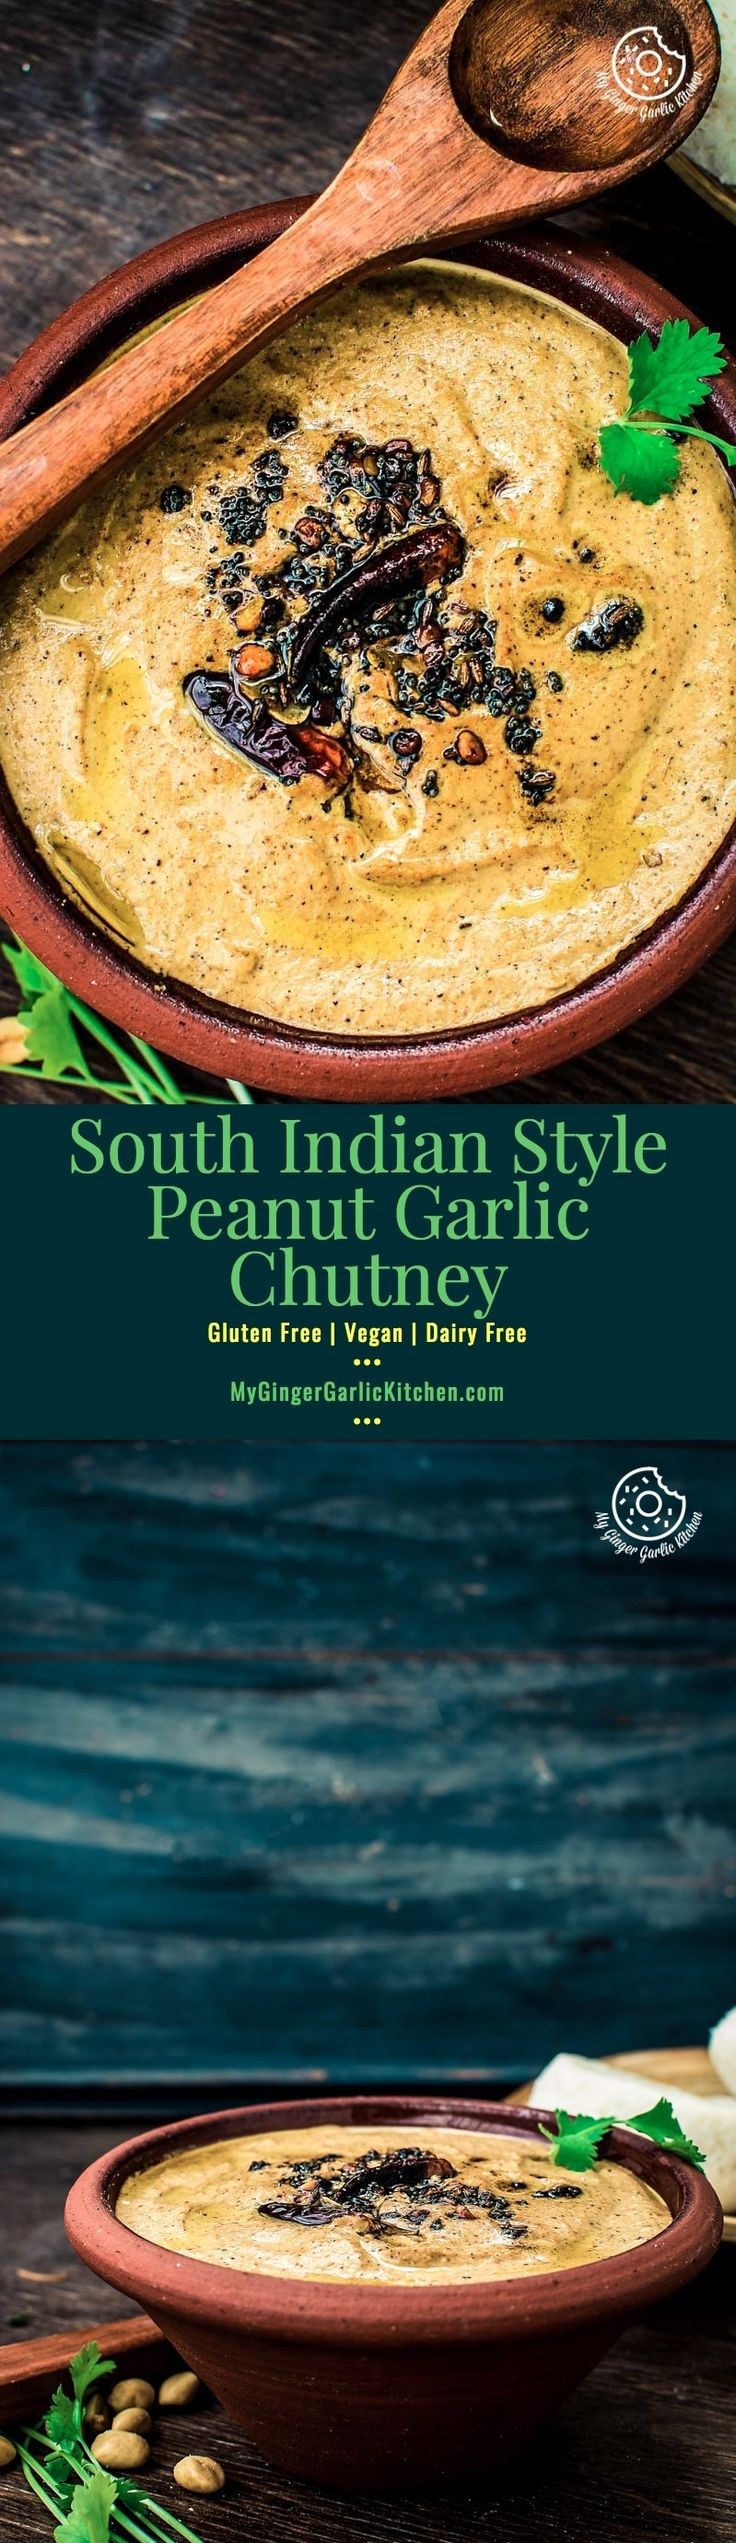 How To Make South Indian Style Peanut Garlic Chutney is a thick, classic, creamy, sweet, and spicy-nutty chutney. This is best accompanied with idli, dosa & uttapam and all type of parathas, or any other Indian snacks. From: mygingergarlickitchen.com/ #vegan #chutney #peanut #indianchutney #southindiancuisine #vegetarian #videorecipes #Sidedish